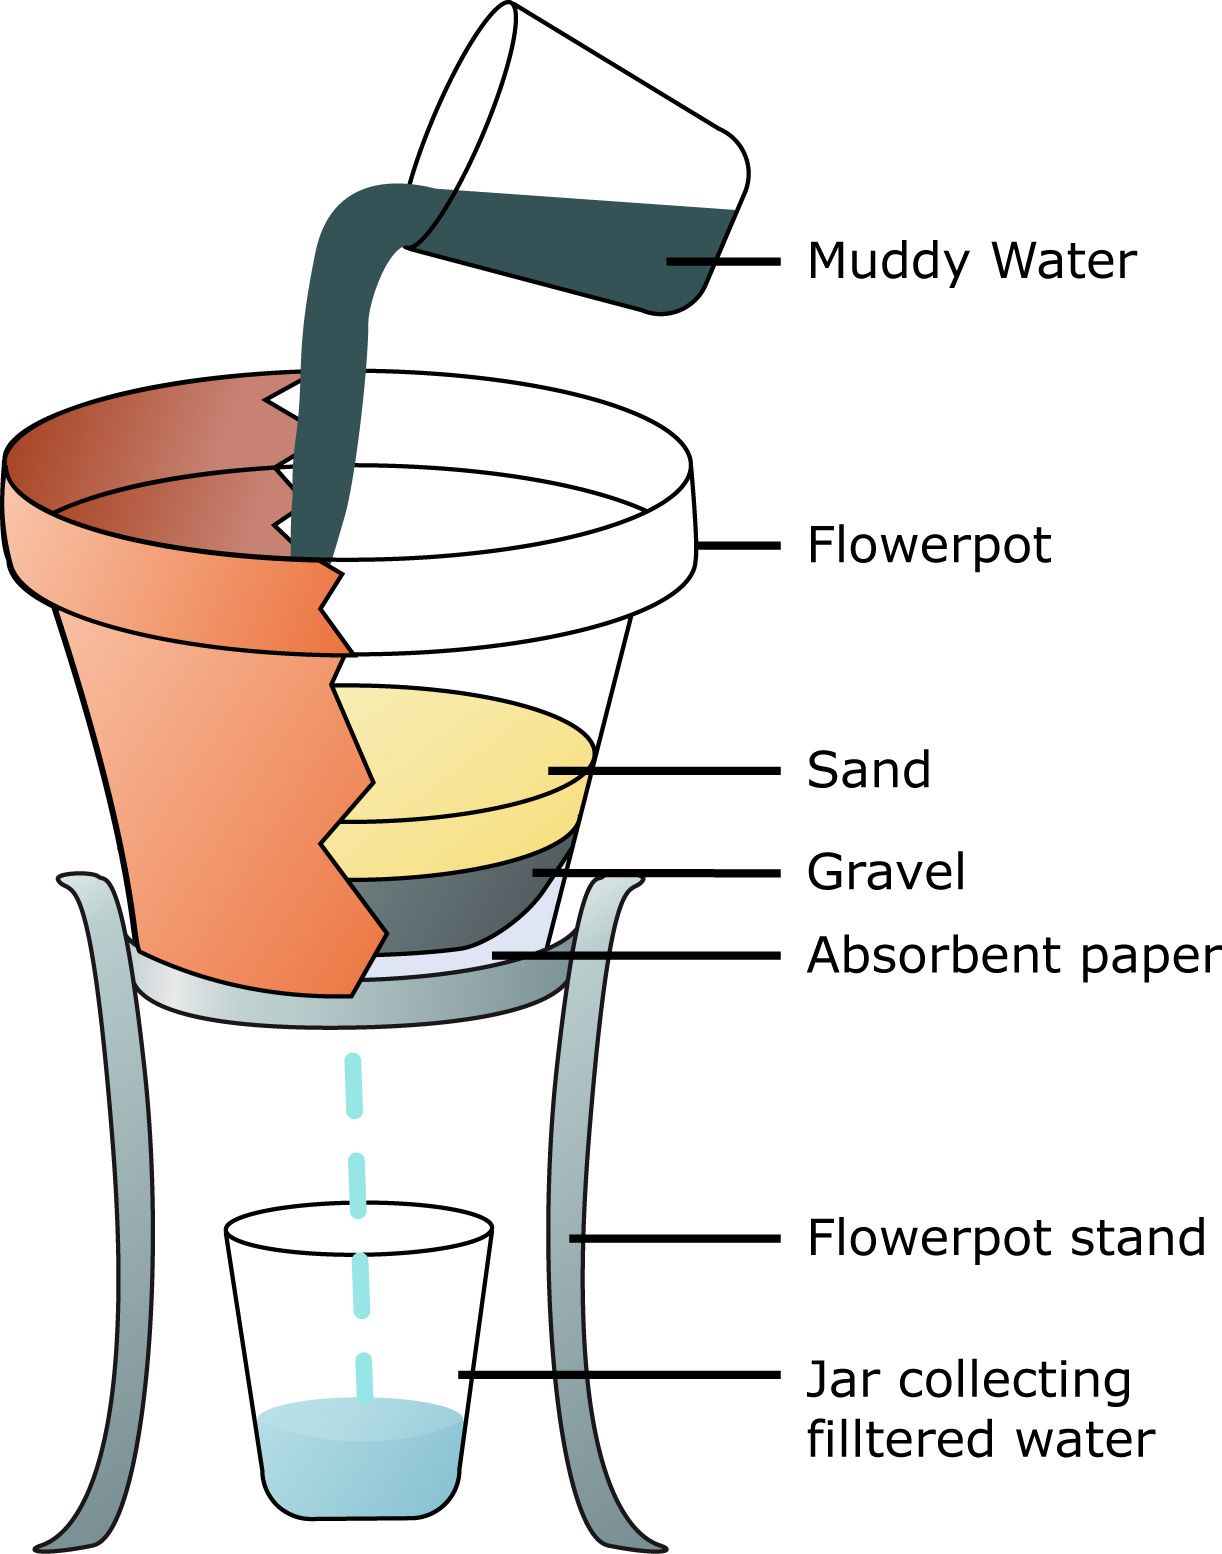 Illustration showing the basic's of filtering muddy water